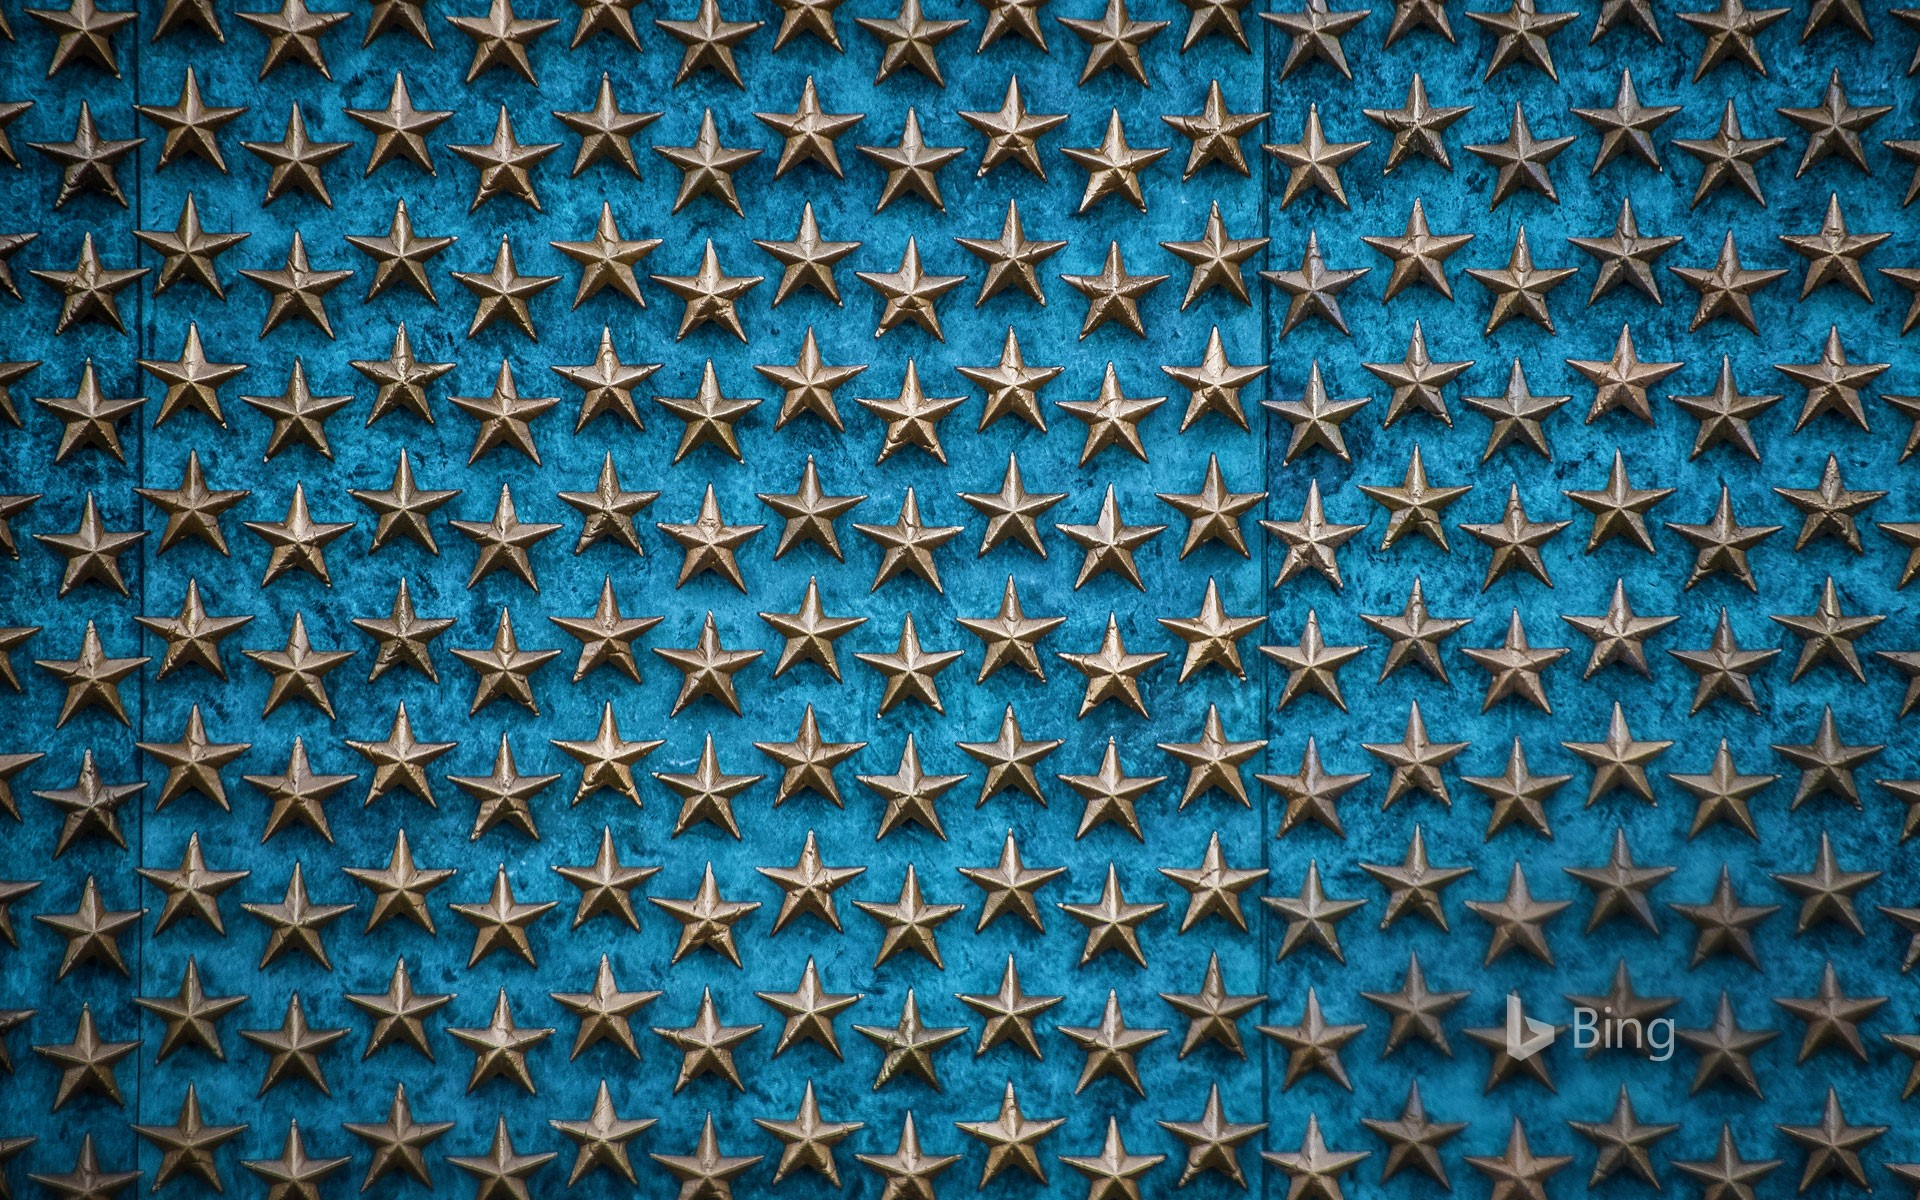 The Freedom Wall at the World War II Memorial in Washington, DC